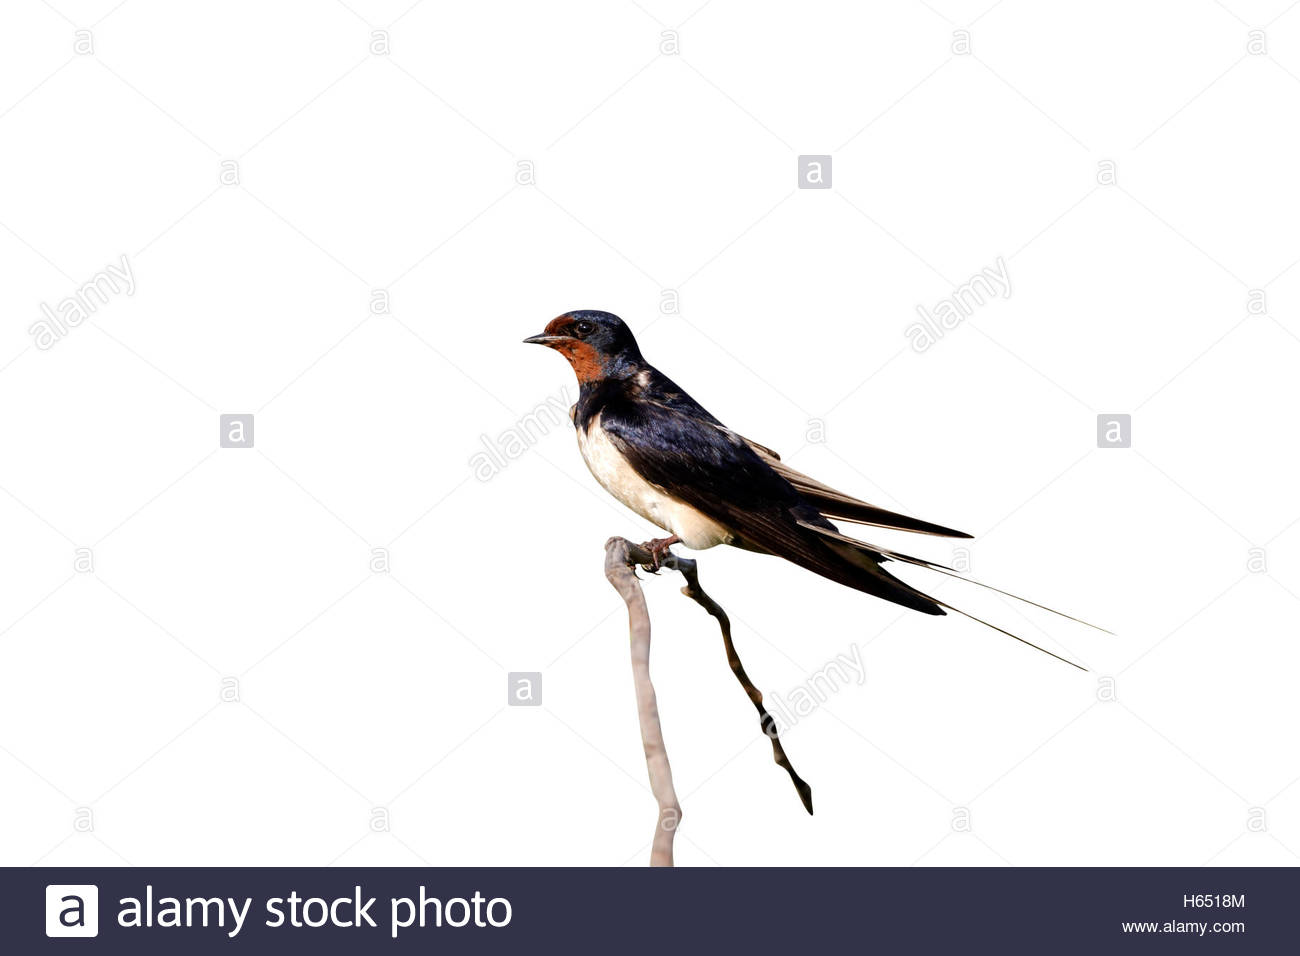 1300x956 European Barn Swallow Stock Photos Amp European Barn Swallow Stock